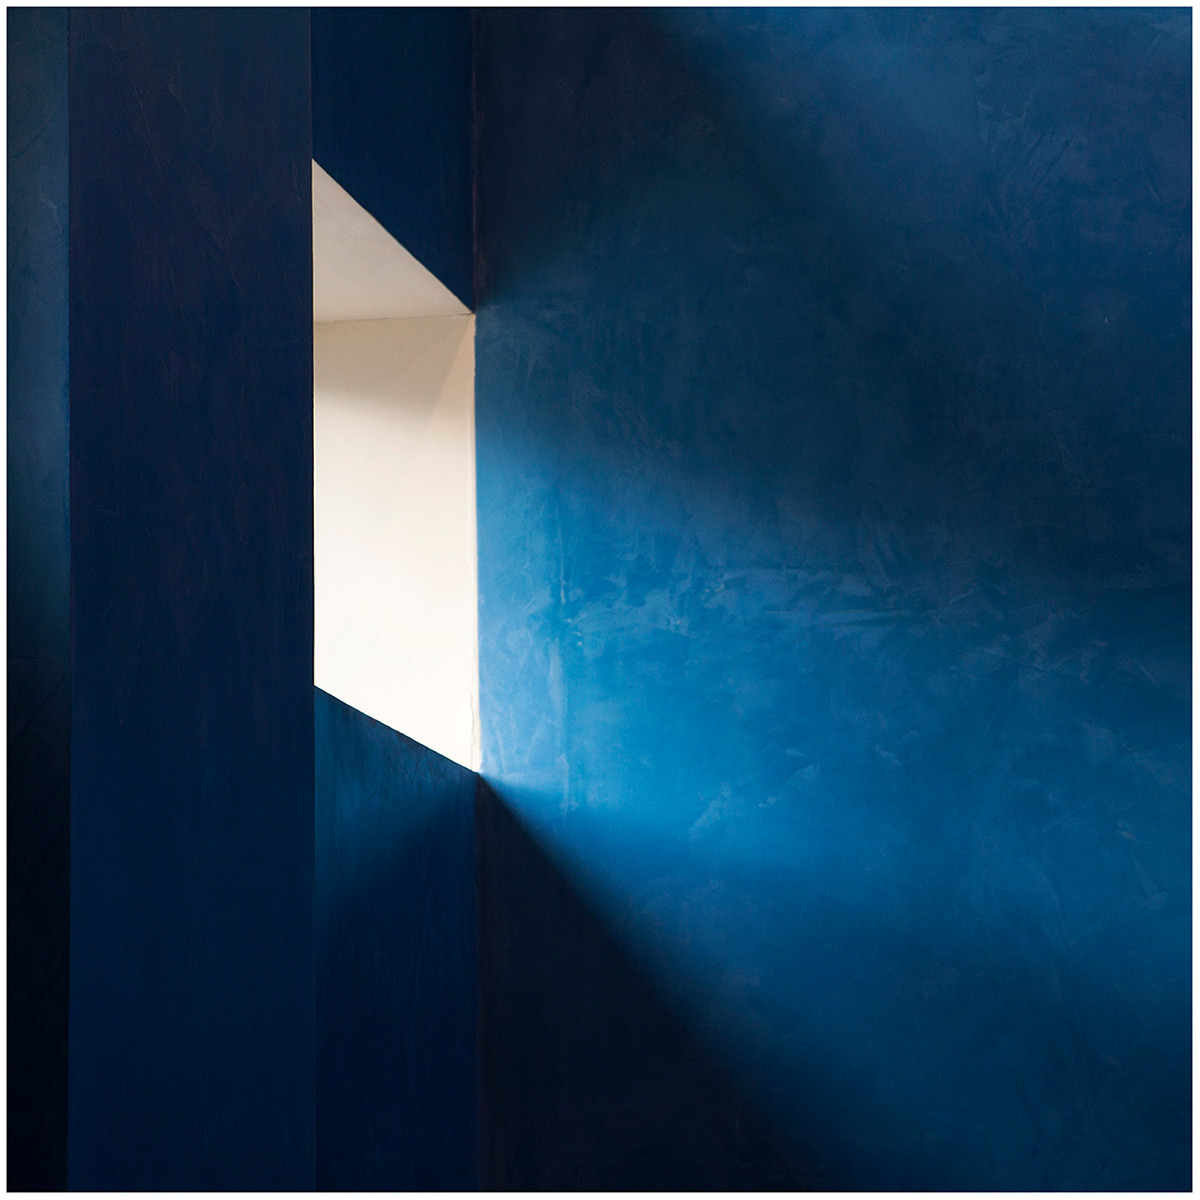 PDI - Blue Room by Gary Johnston (13 marks) - Starred